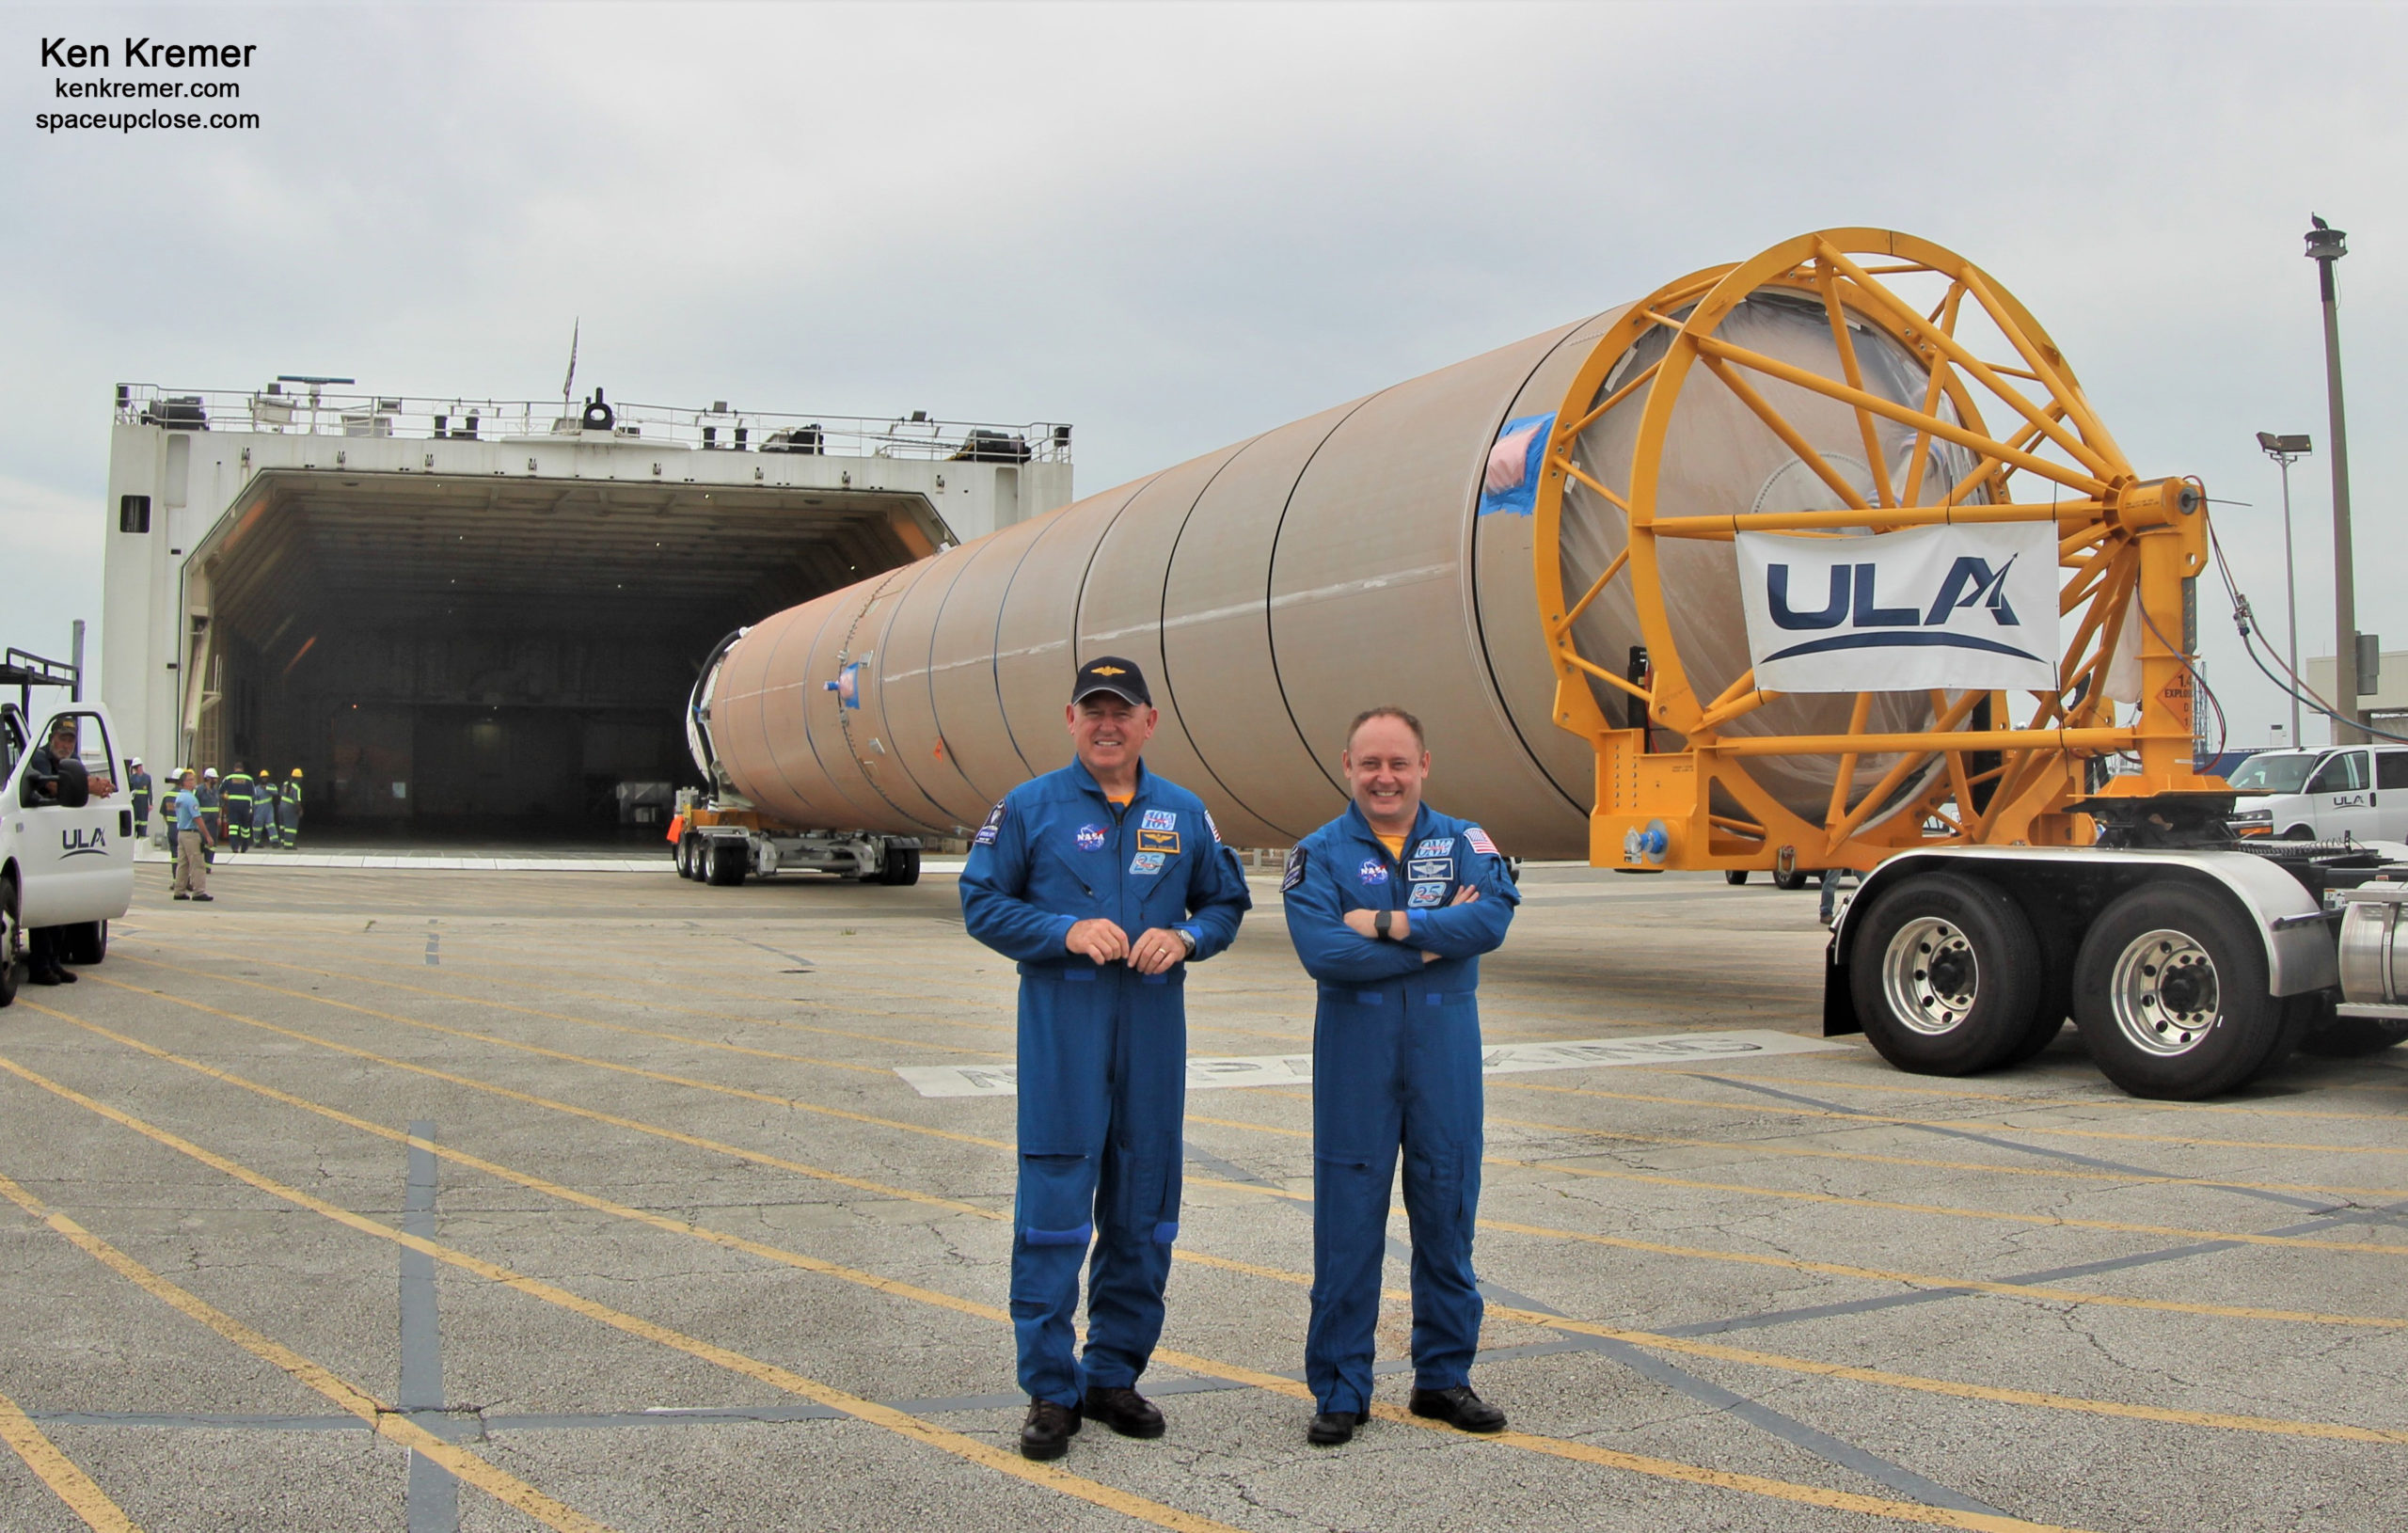 ULA Atlas V Rocket for NASA Boeing Starliner Crew Test Flight to ISS Unloaded and Shipped to Cape Launch Site: Photos